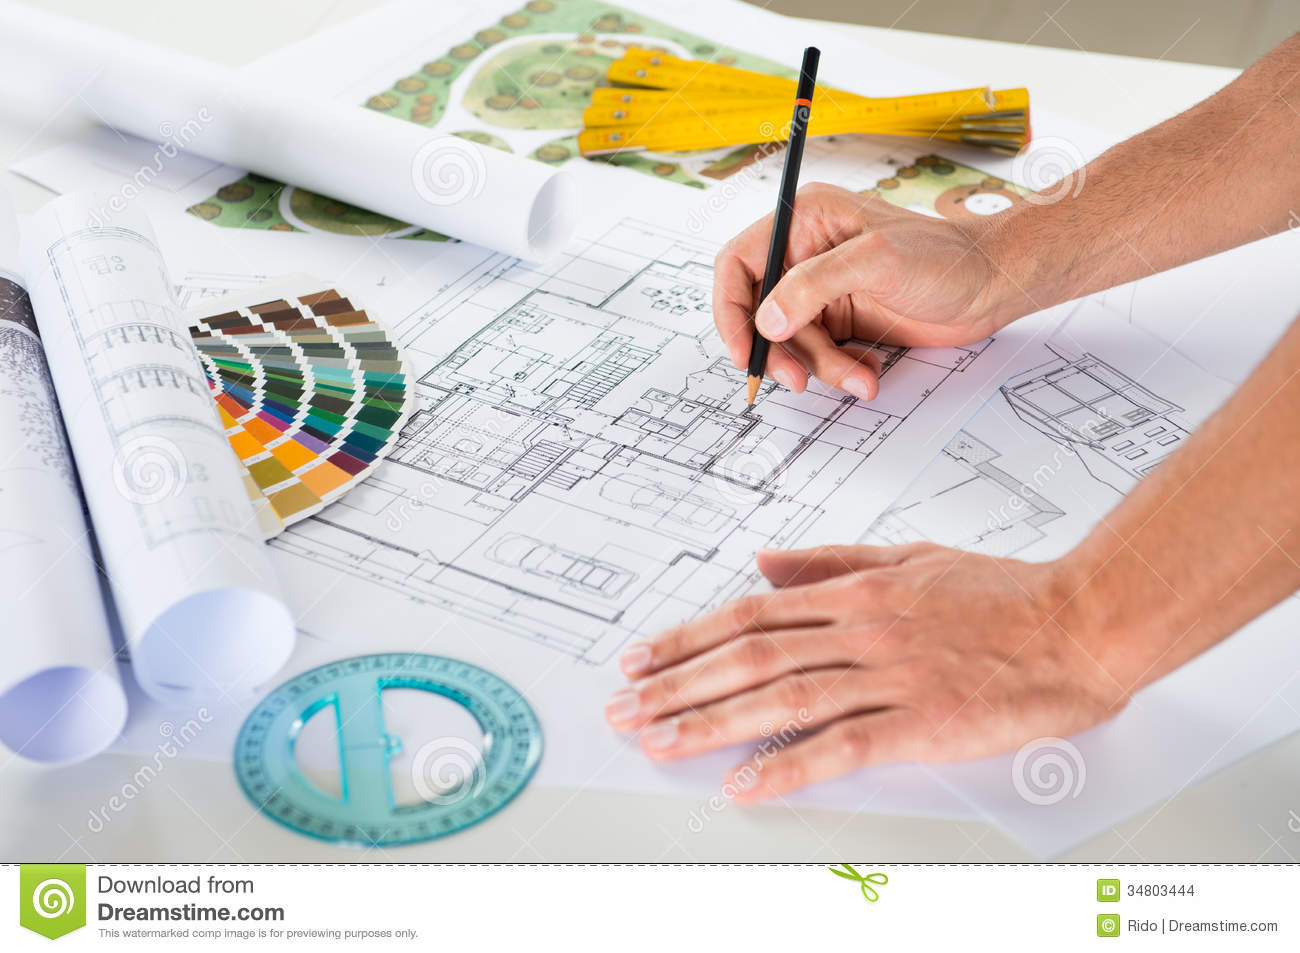 Architectural Drawing Blueprint draftsman drawing plan on blueprint stock images - image: 34803444